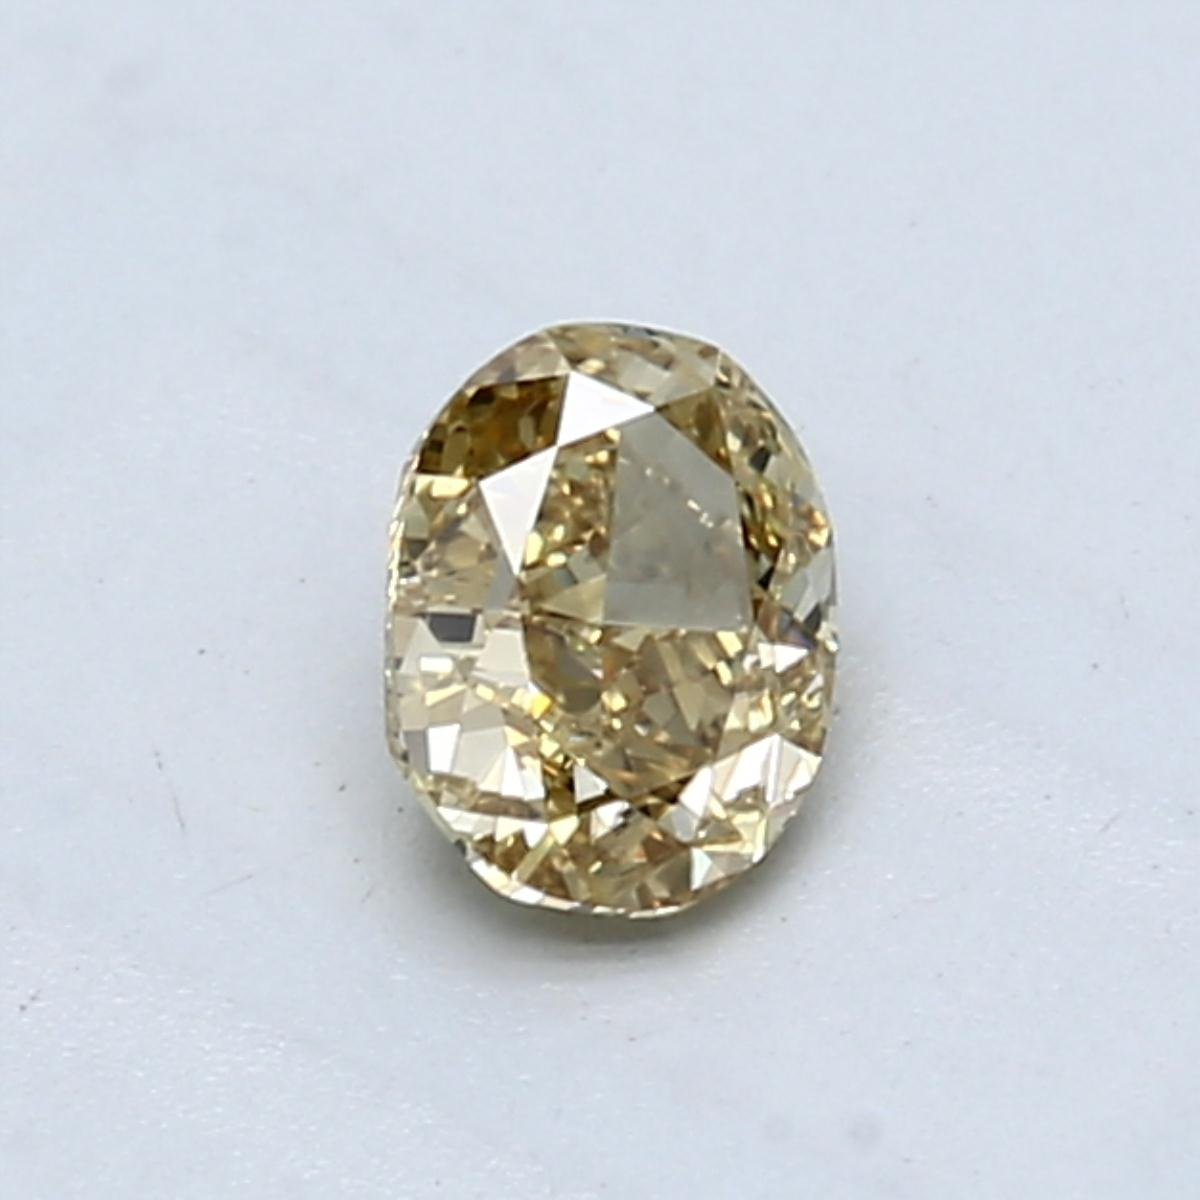 0.54-Carat Brownish Greenish Yellow Oval Diamond by Blue Nile